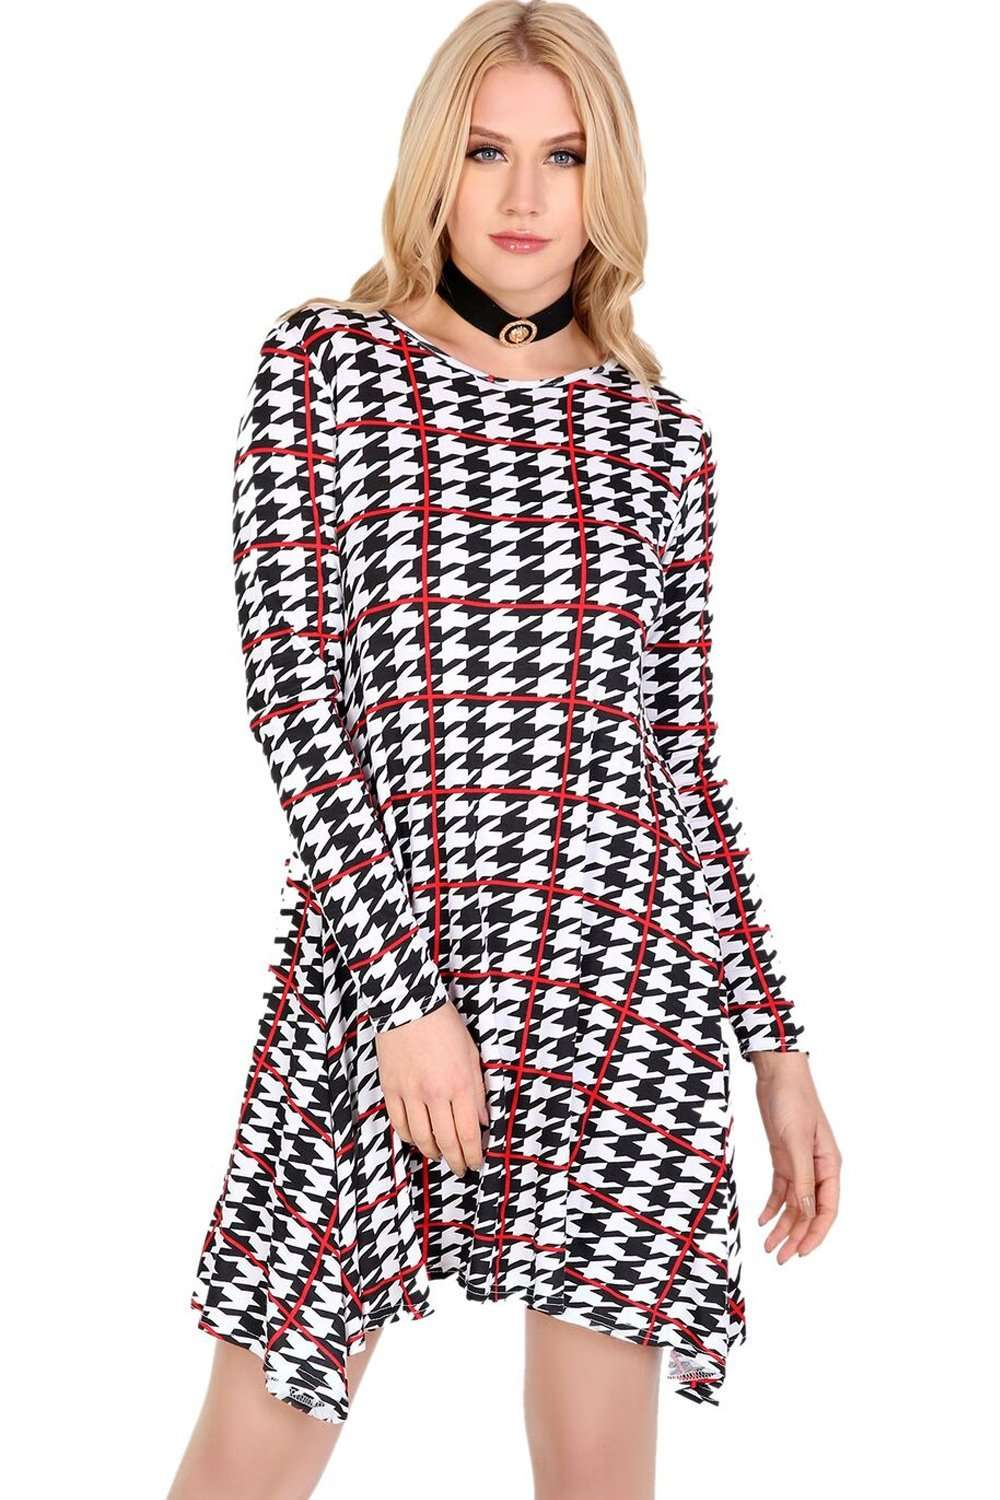 Sallie Long Sleeve Dog Tooth Mini Swing Dress - bejealous-com